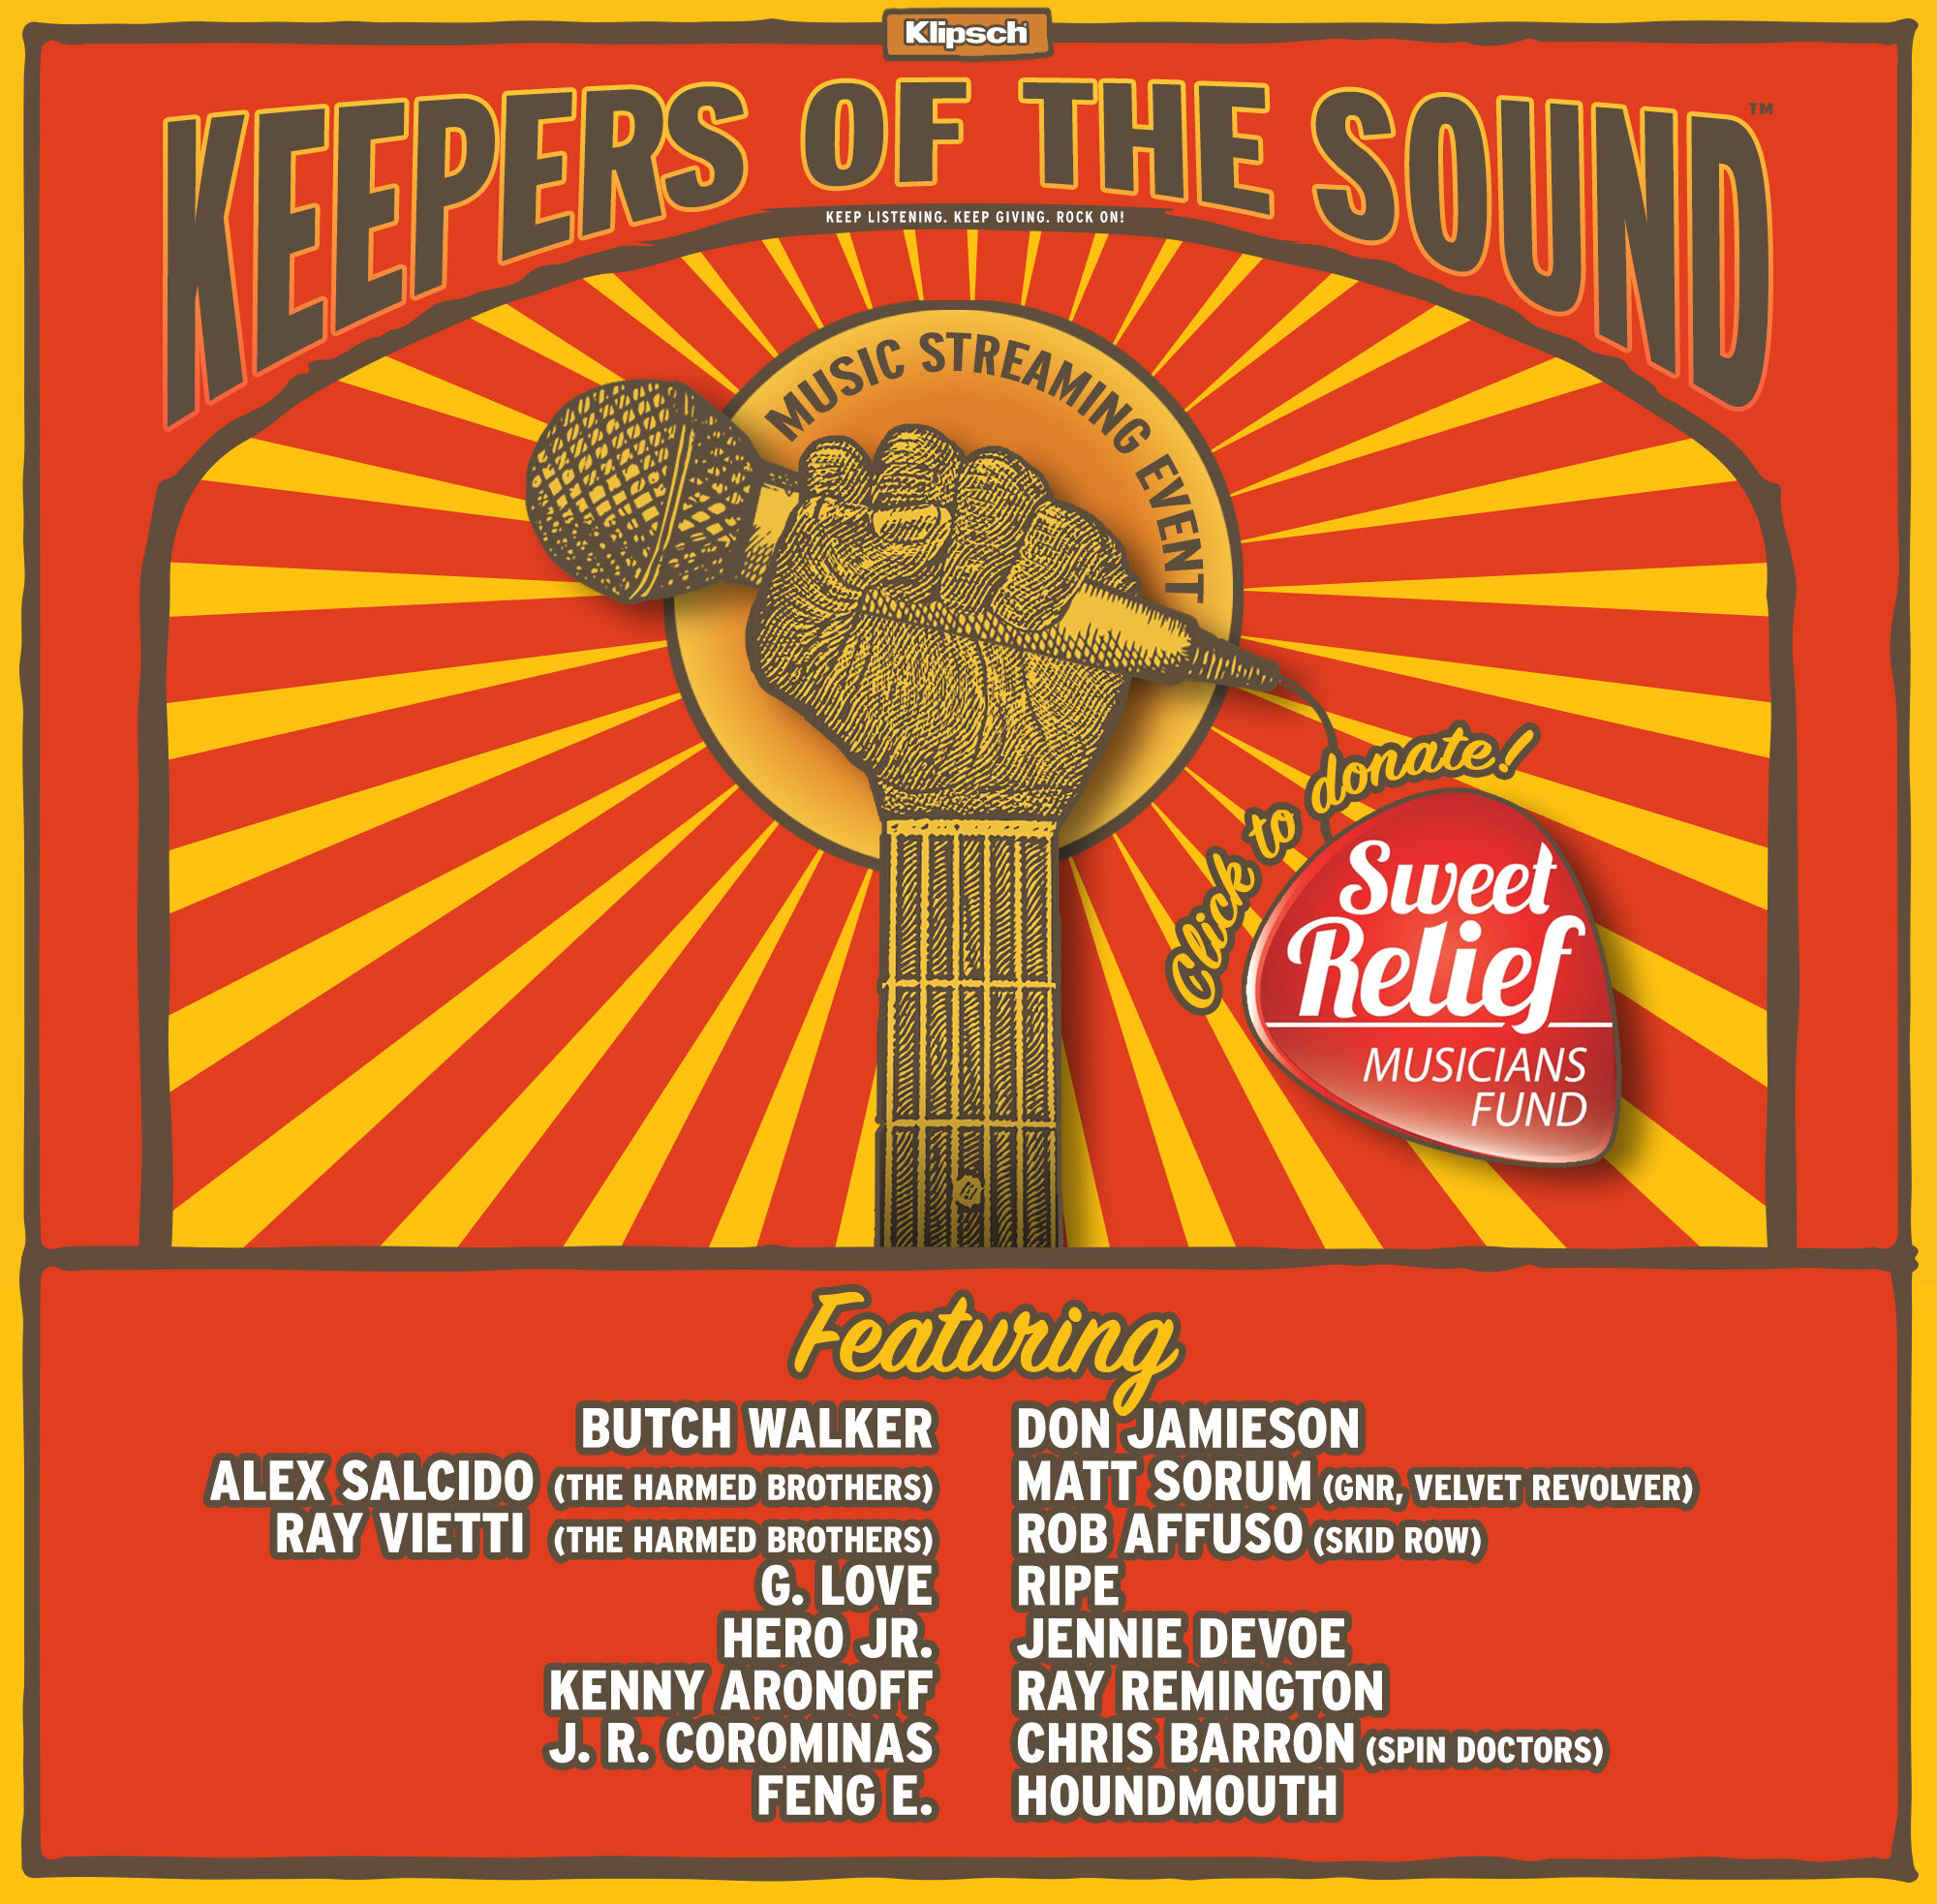 Klipsch Keepers of the Sound poster 2020